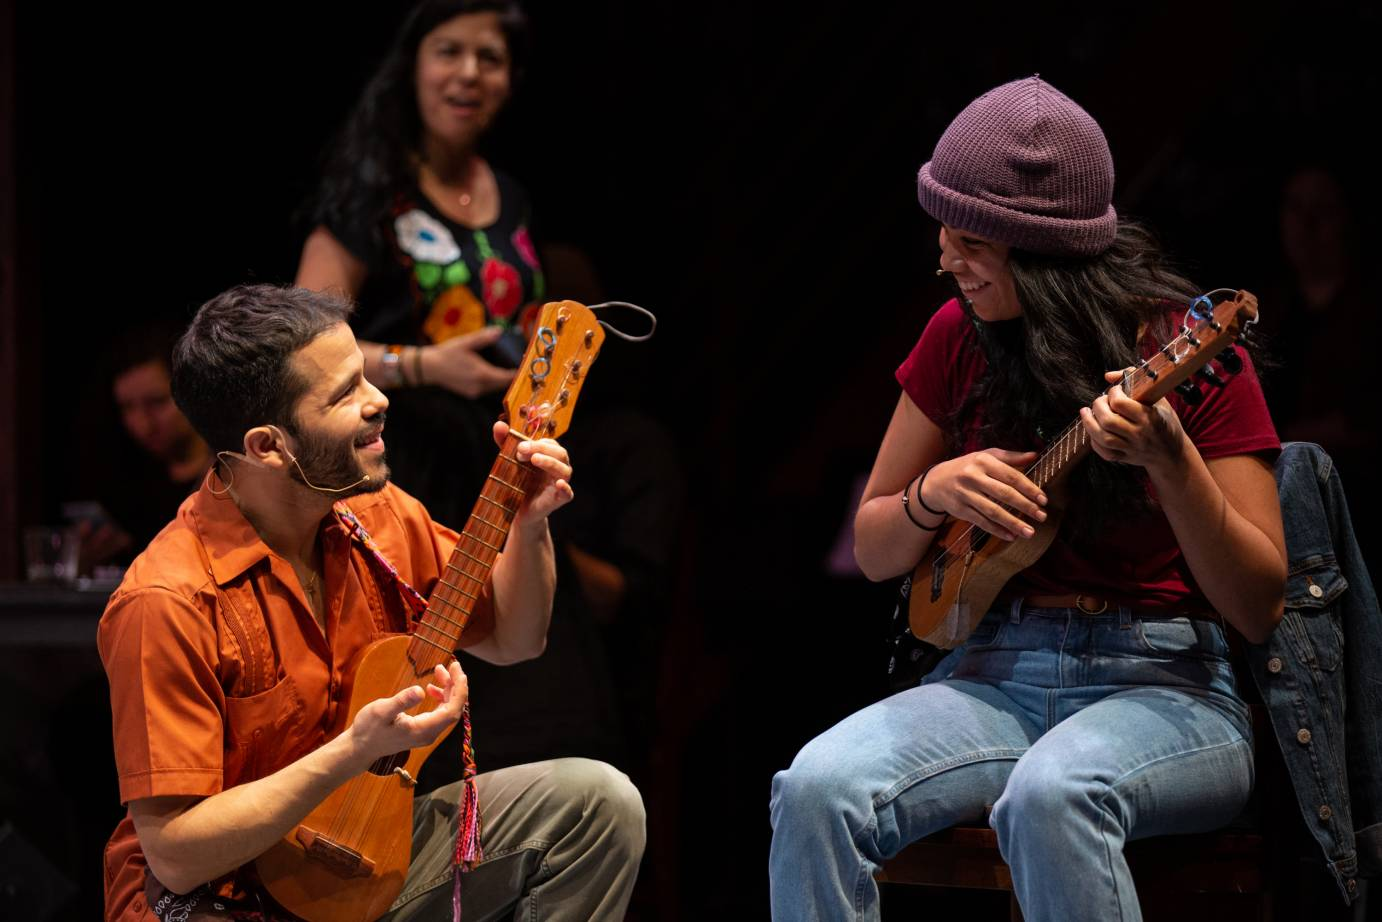 A man and a woman play stringed instruments as they smile at each other